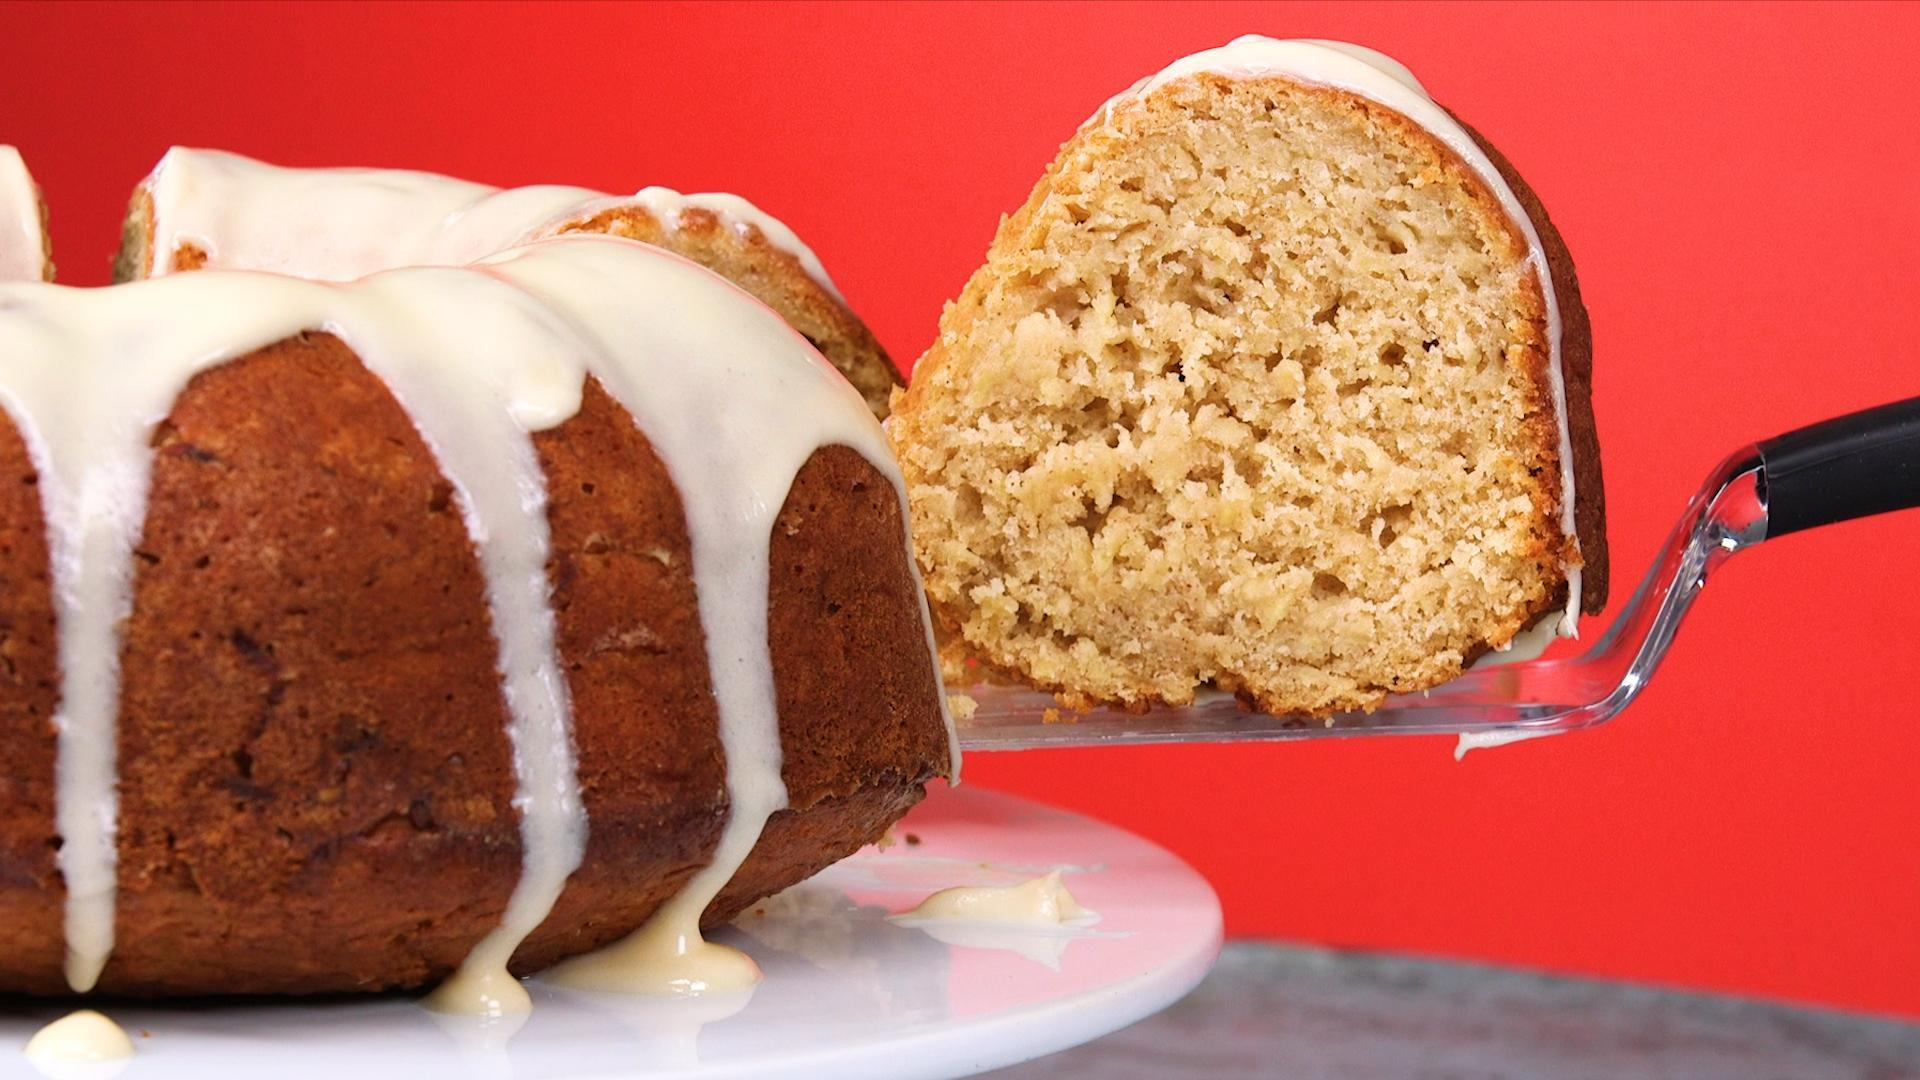 How to Make Apple Bundt Cake with Apple-Cream Cheese Glaze